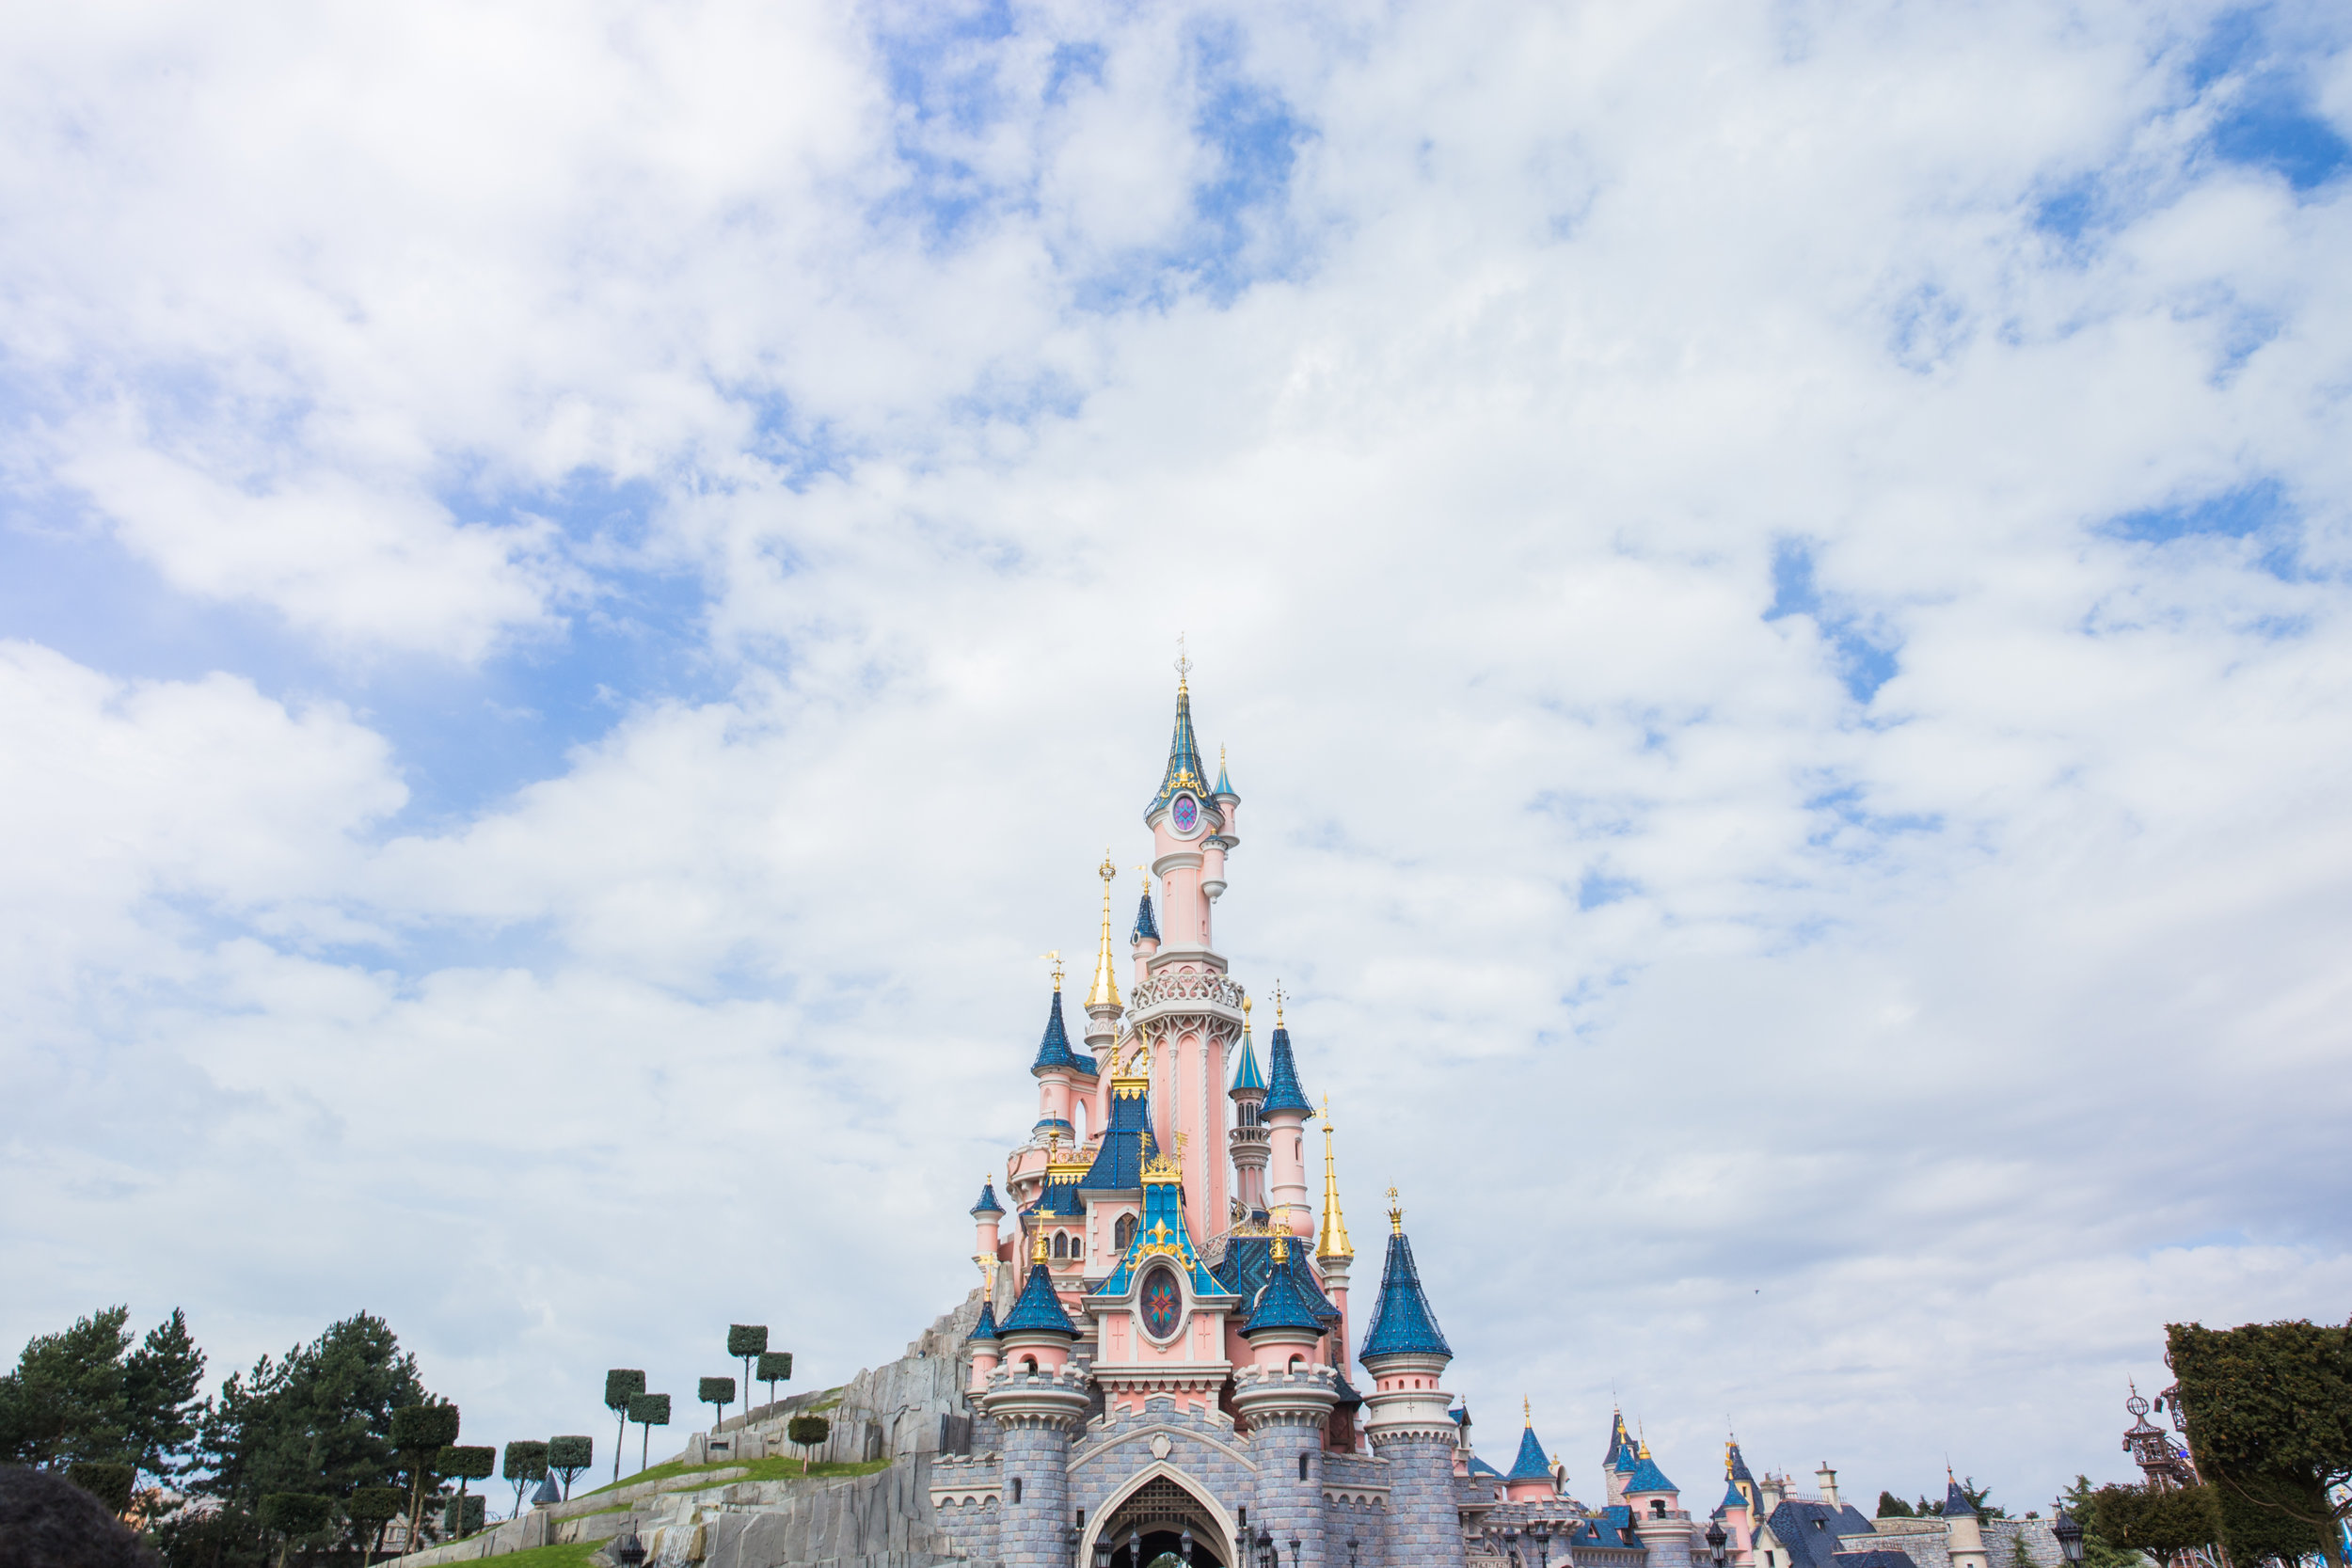 Disneyland Paris Destination Wedding Photographers Megapixels media